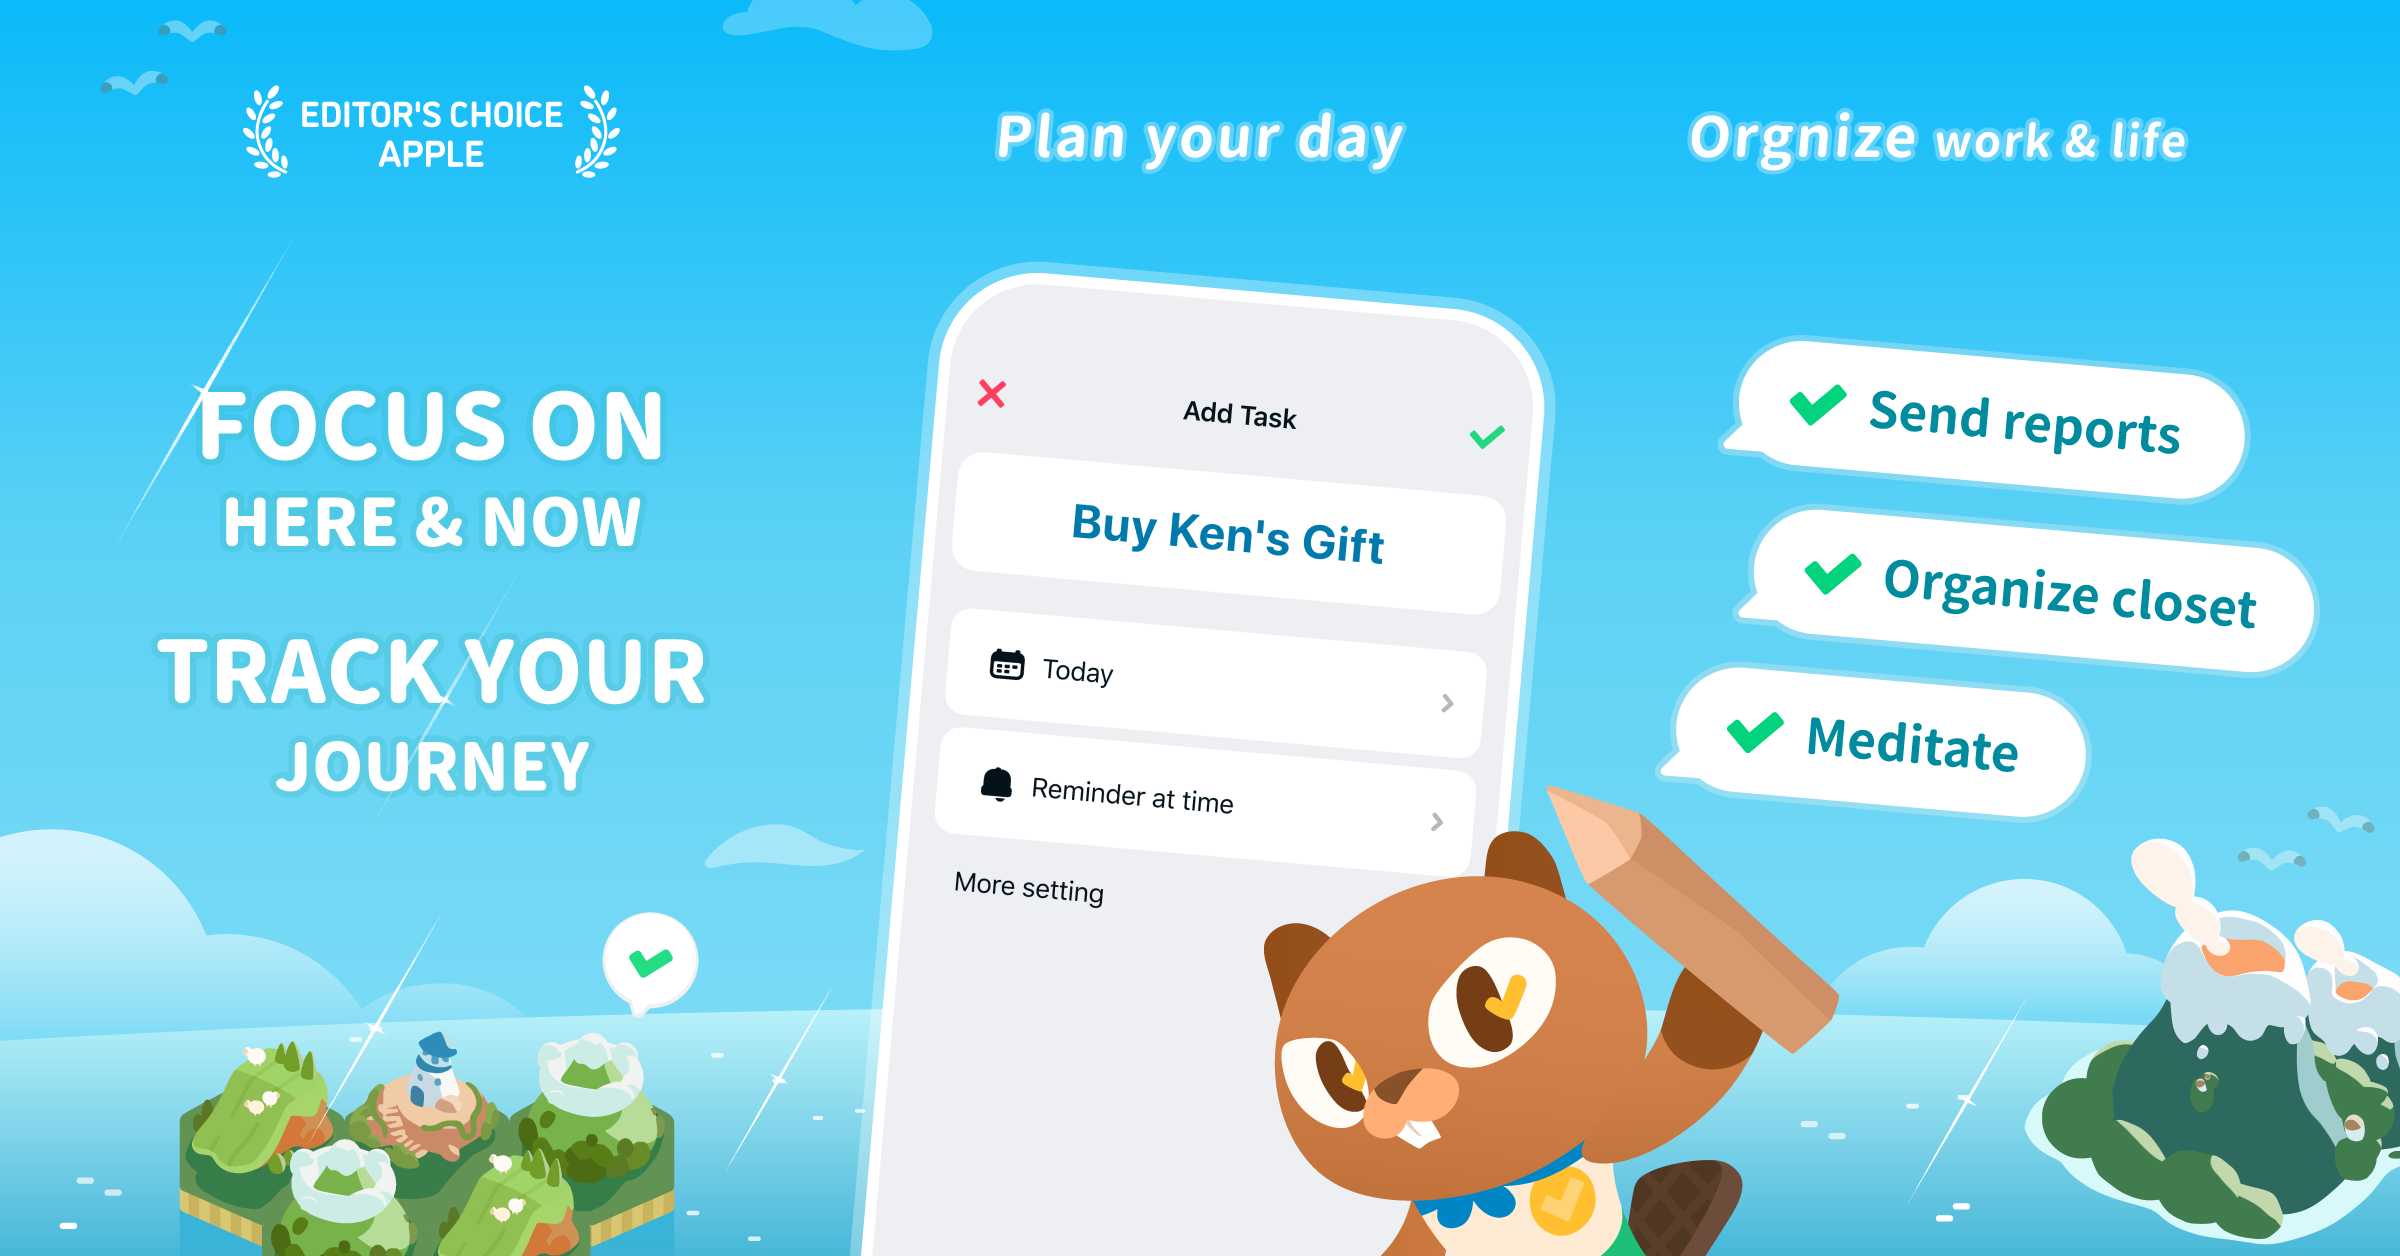 Now Also Available on Android: Fourdesire's Playful Task Management App To-Do Adventure That Converts To-Do Lists into Mission-Accomplished